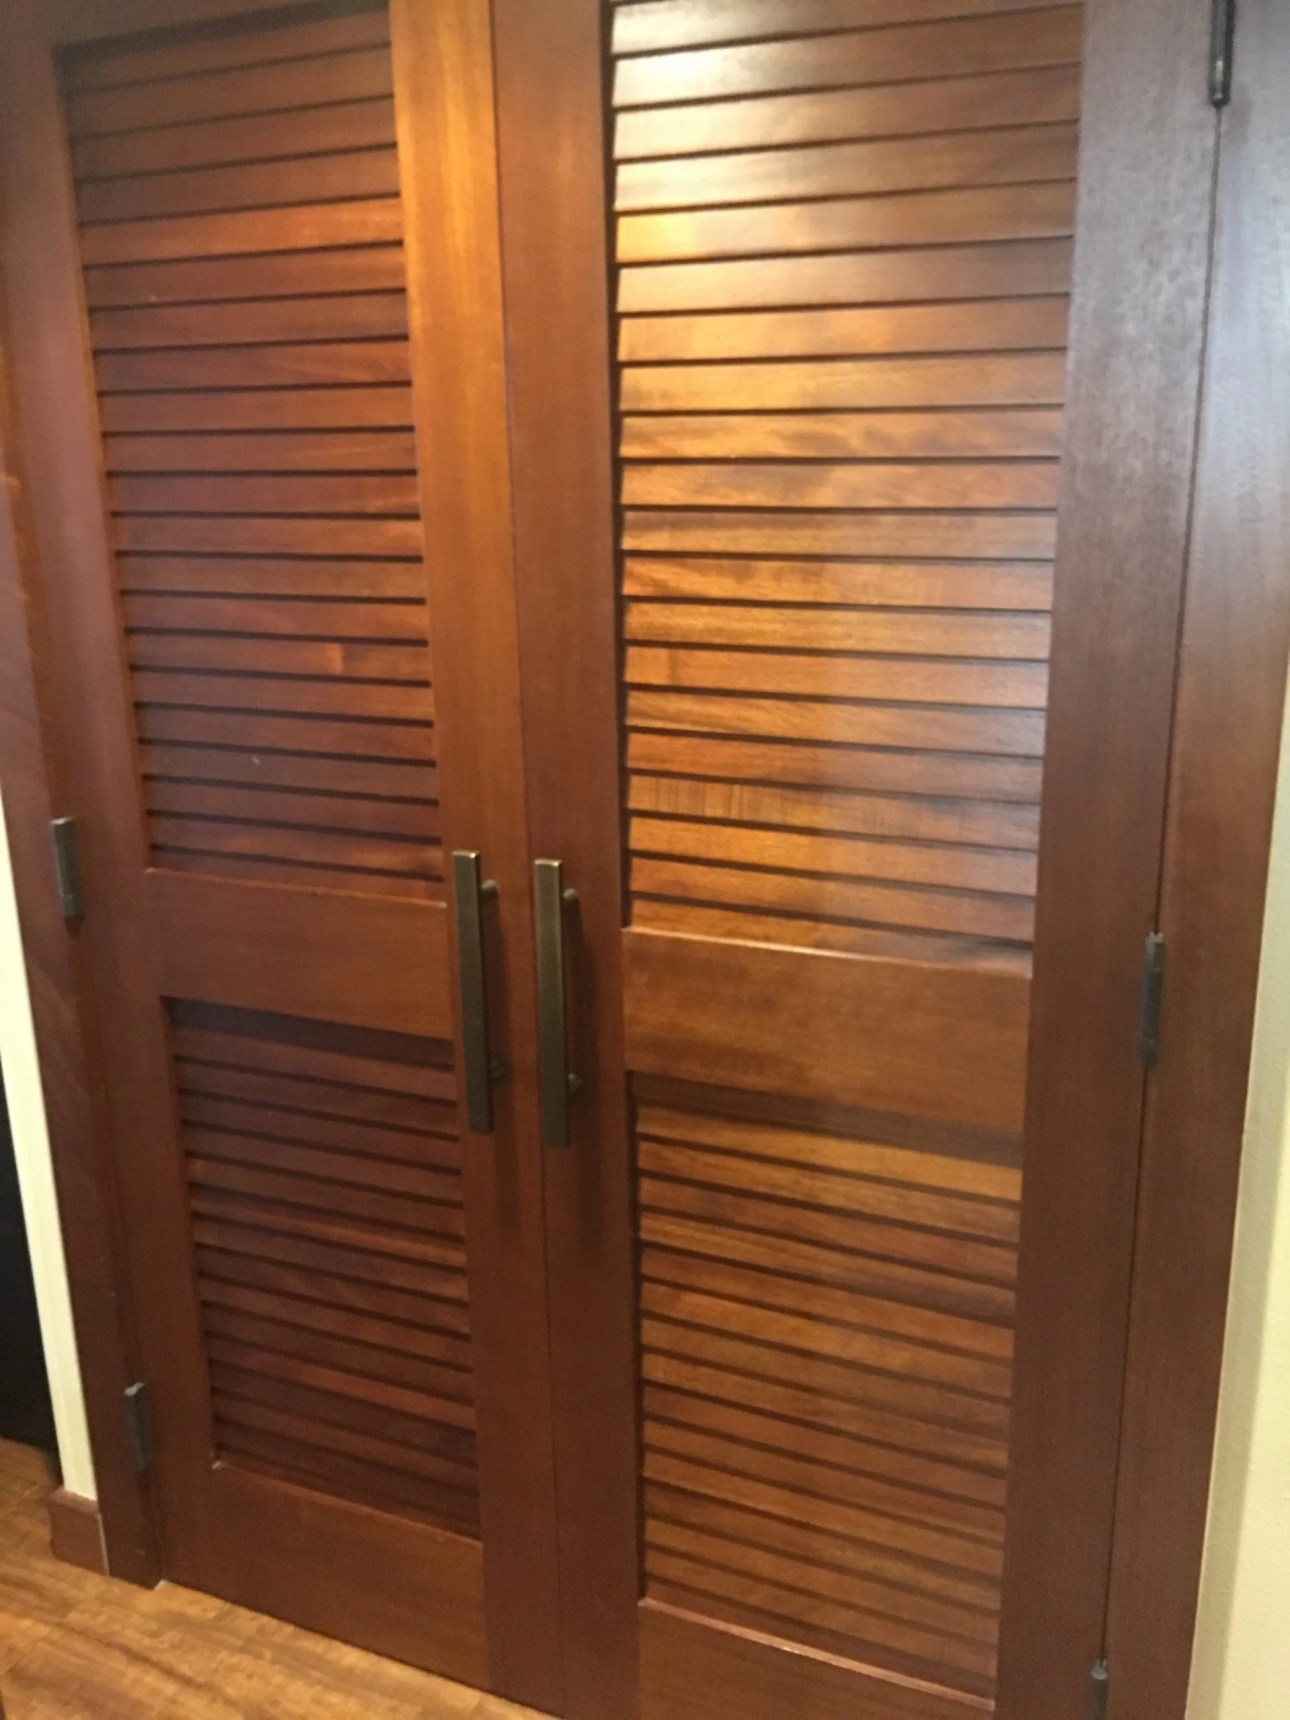 Disney Vacation Club Studio at the Polynesian Village Resort closet